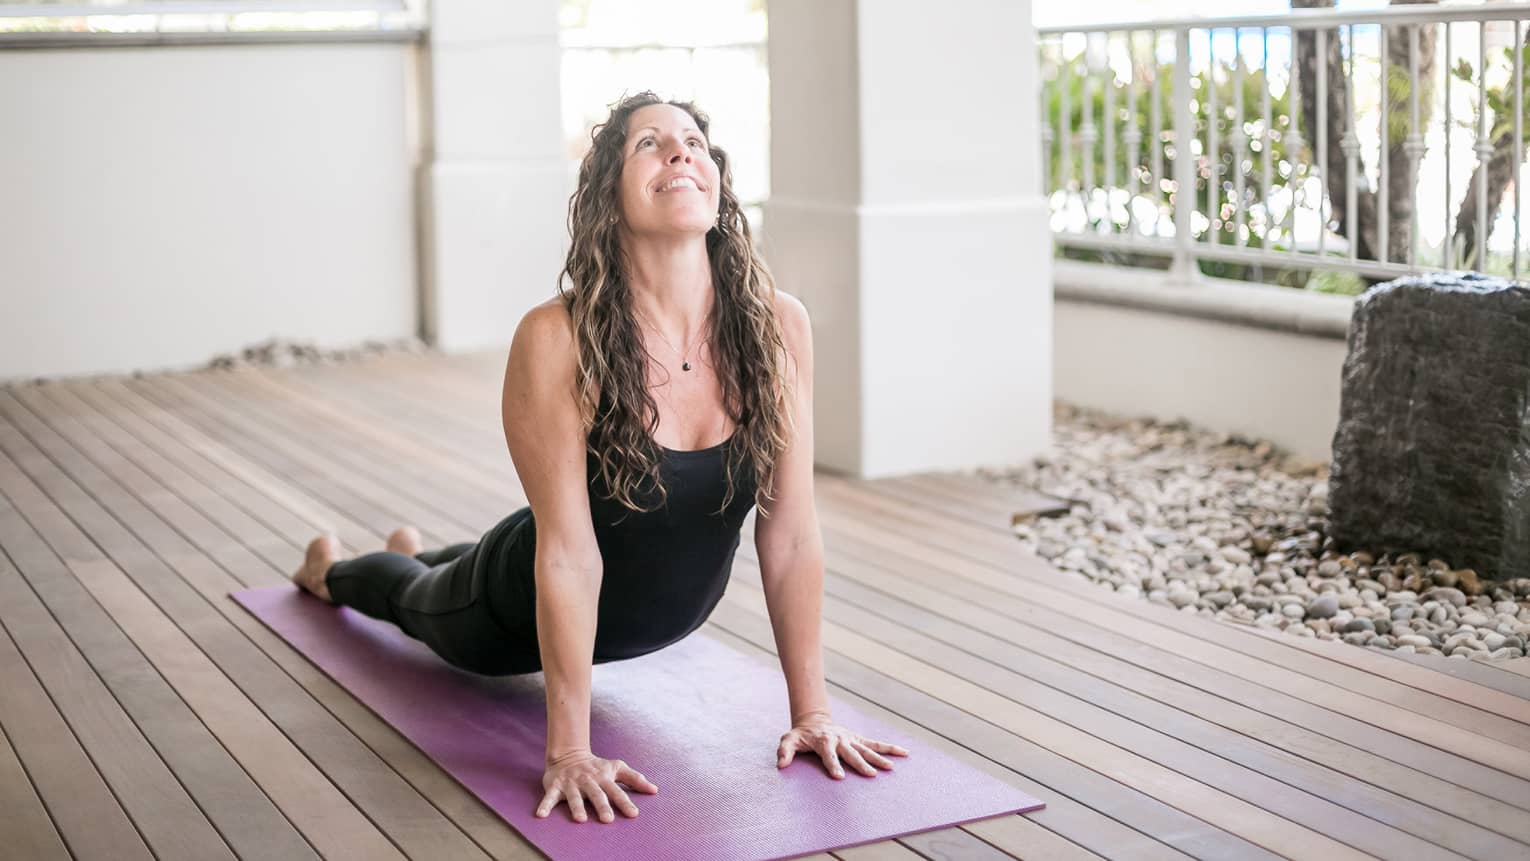 Woman smiles, looks up as she does yoga stretch on all fours on purple mat